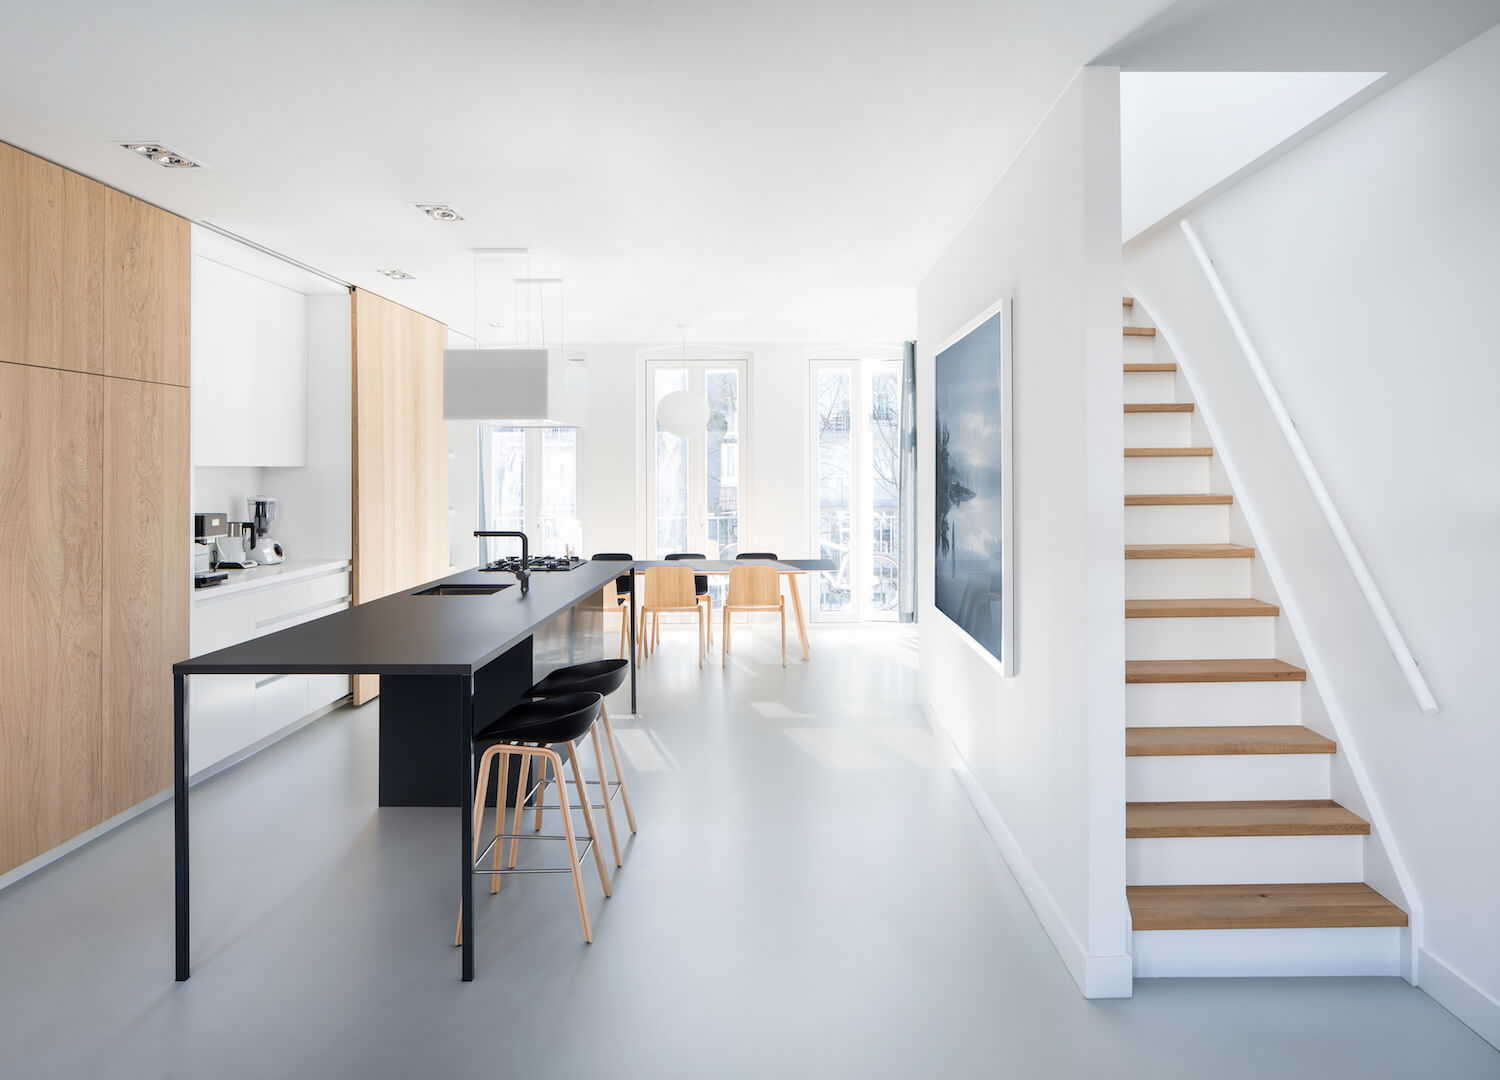 https://estliving.com/wp-content/uploads/2018/06/est-living-amsterdam-apartment-i29-architects-2.jpg